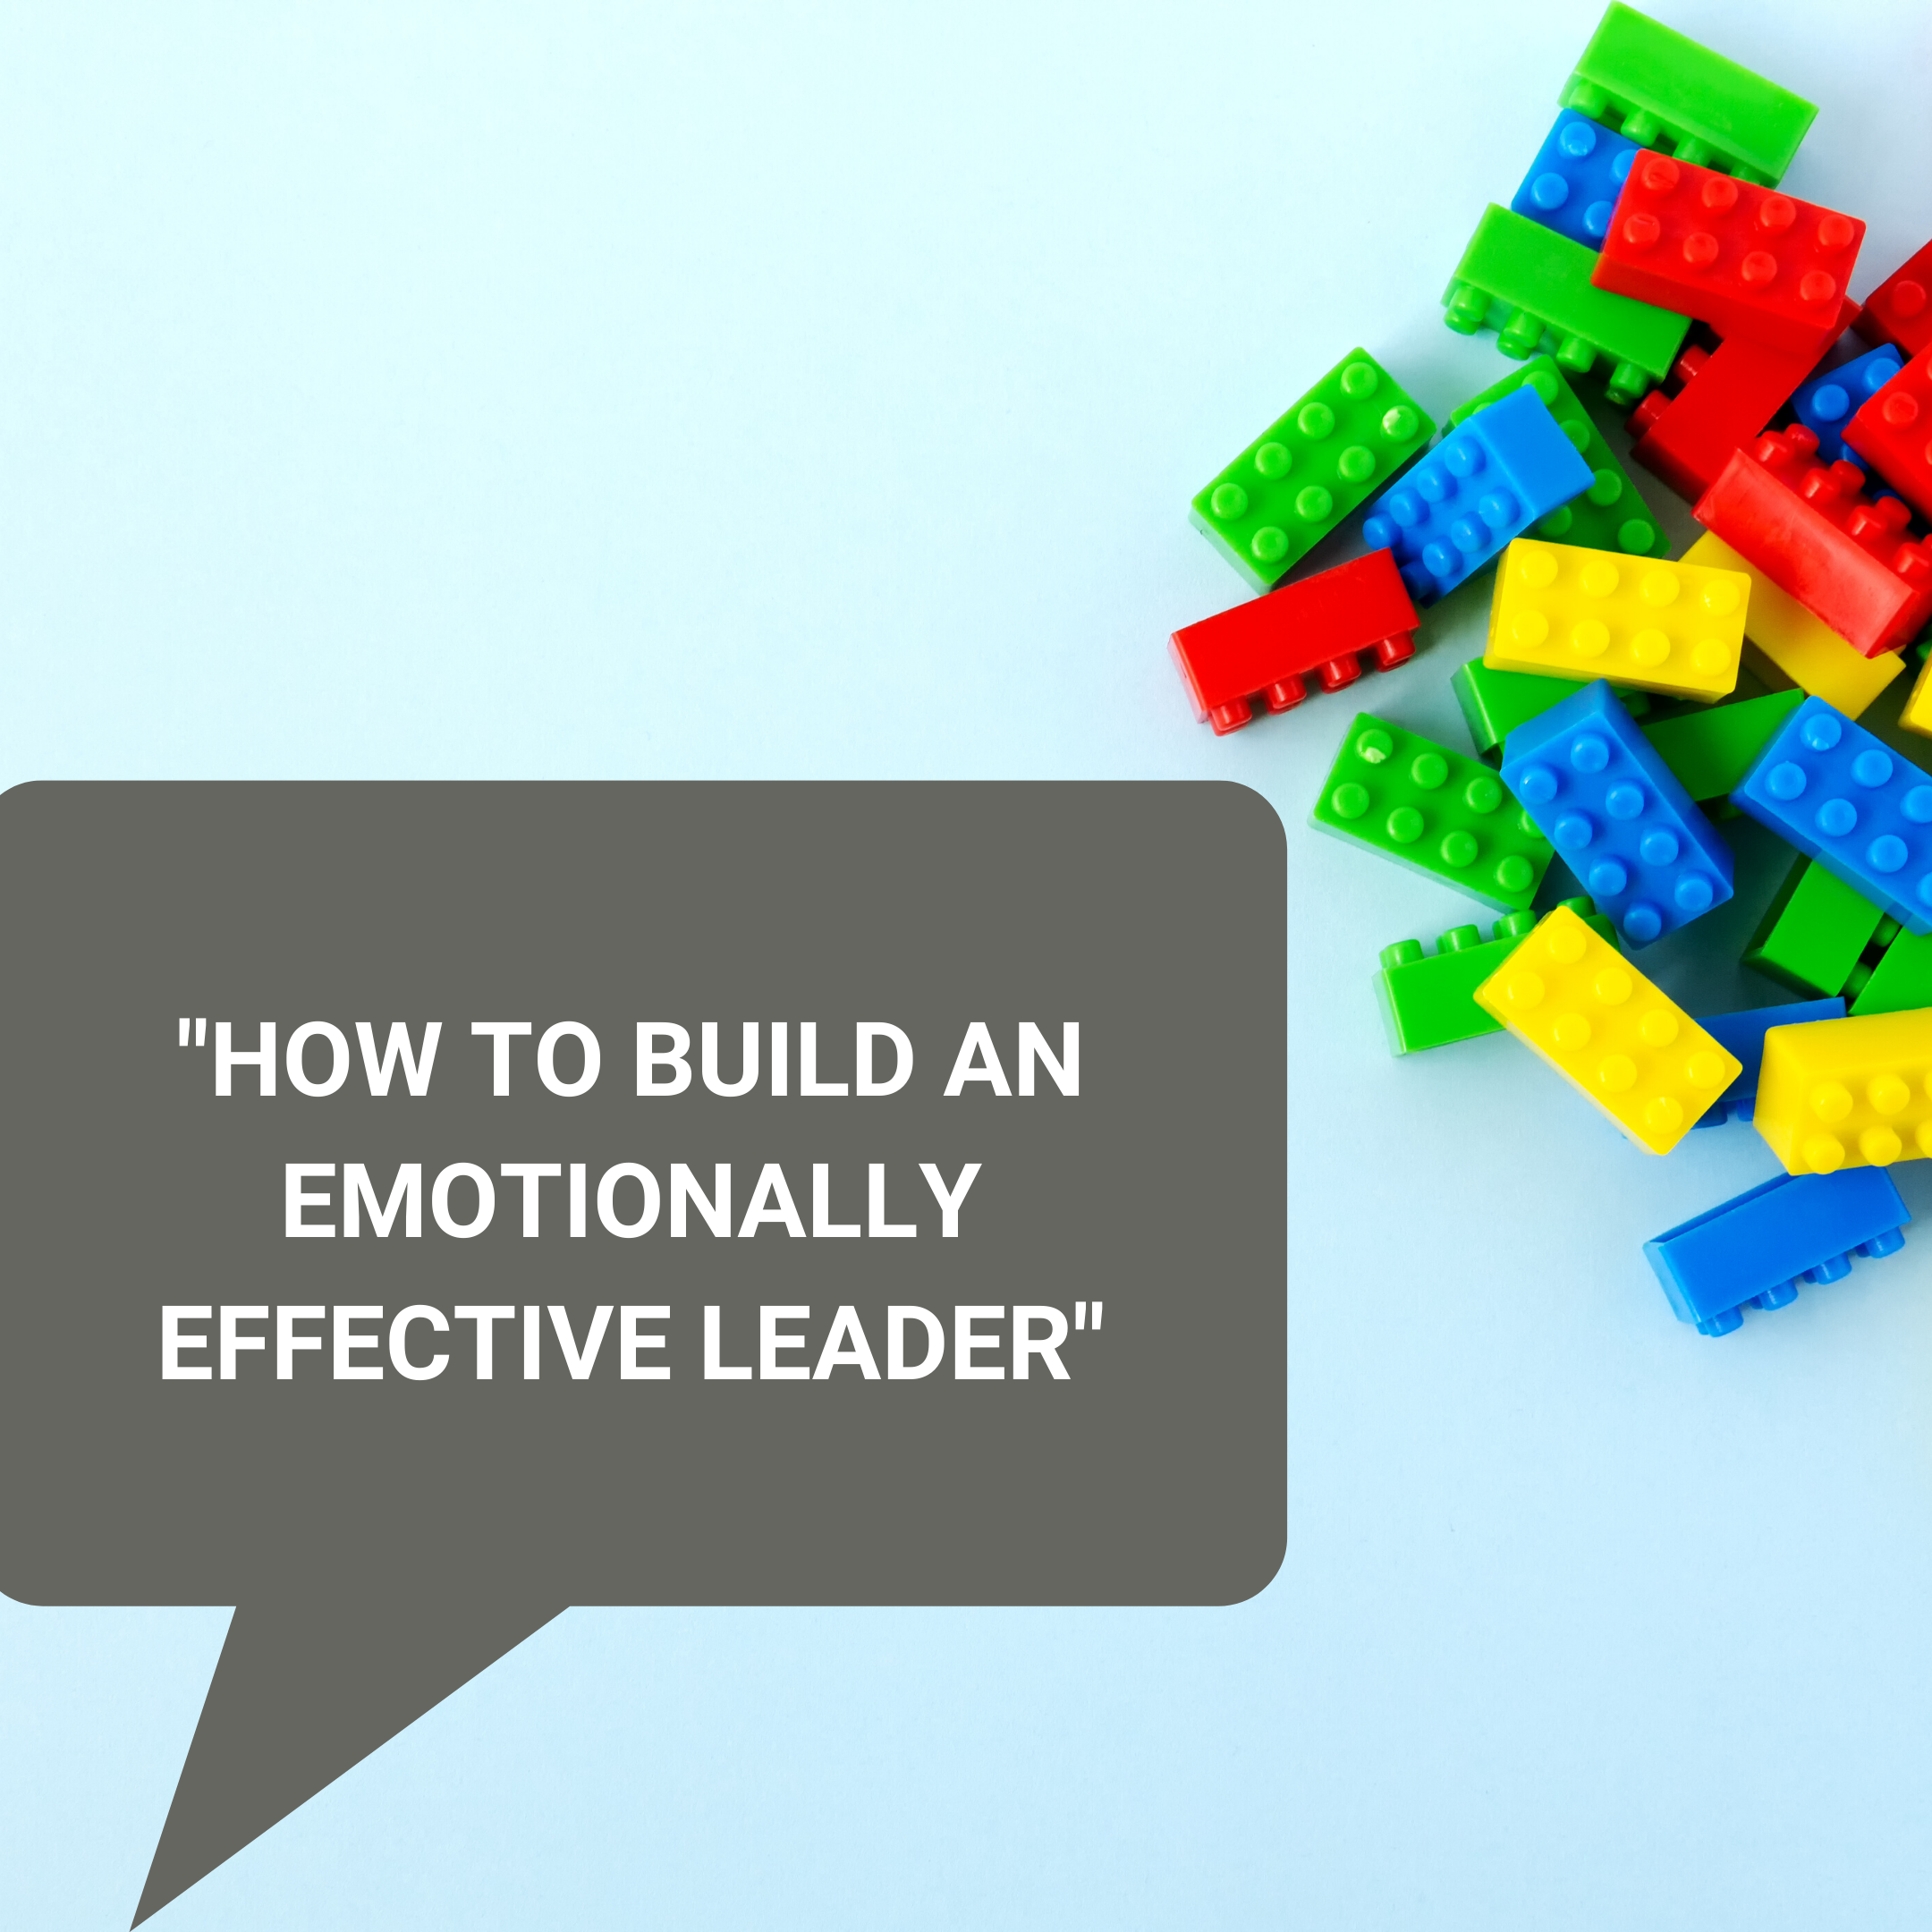 How to Build an Emotionally Effective Leader